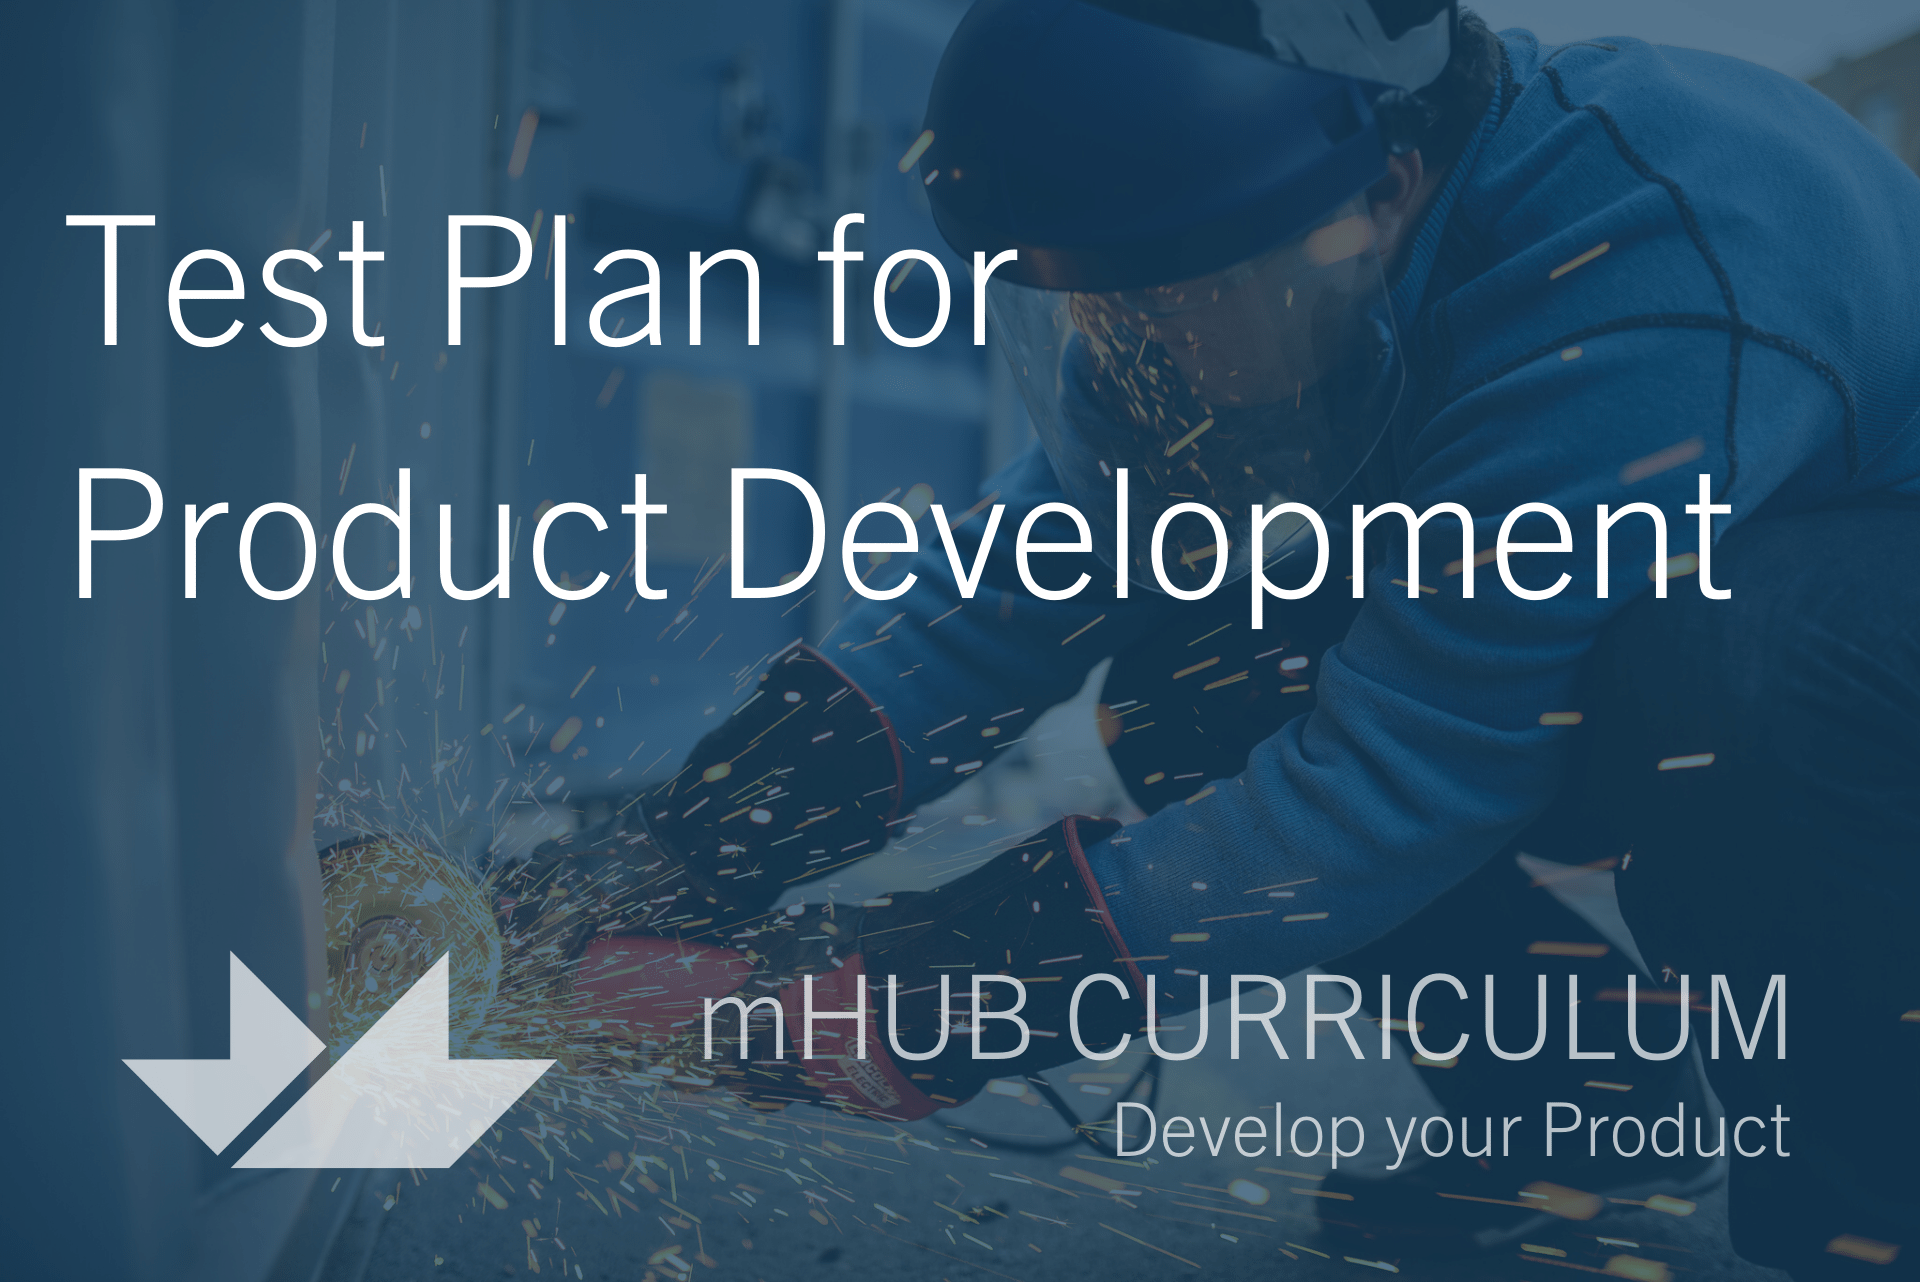 Test Plan for Product Development